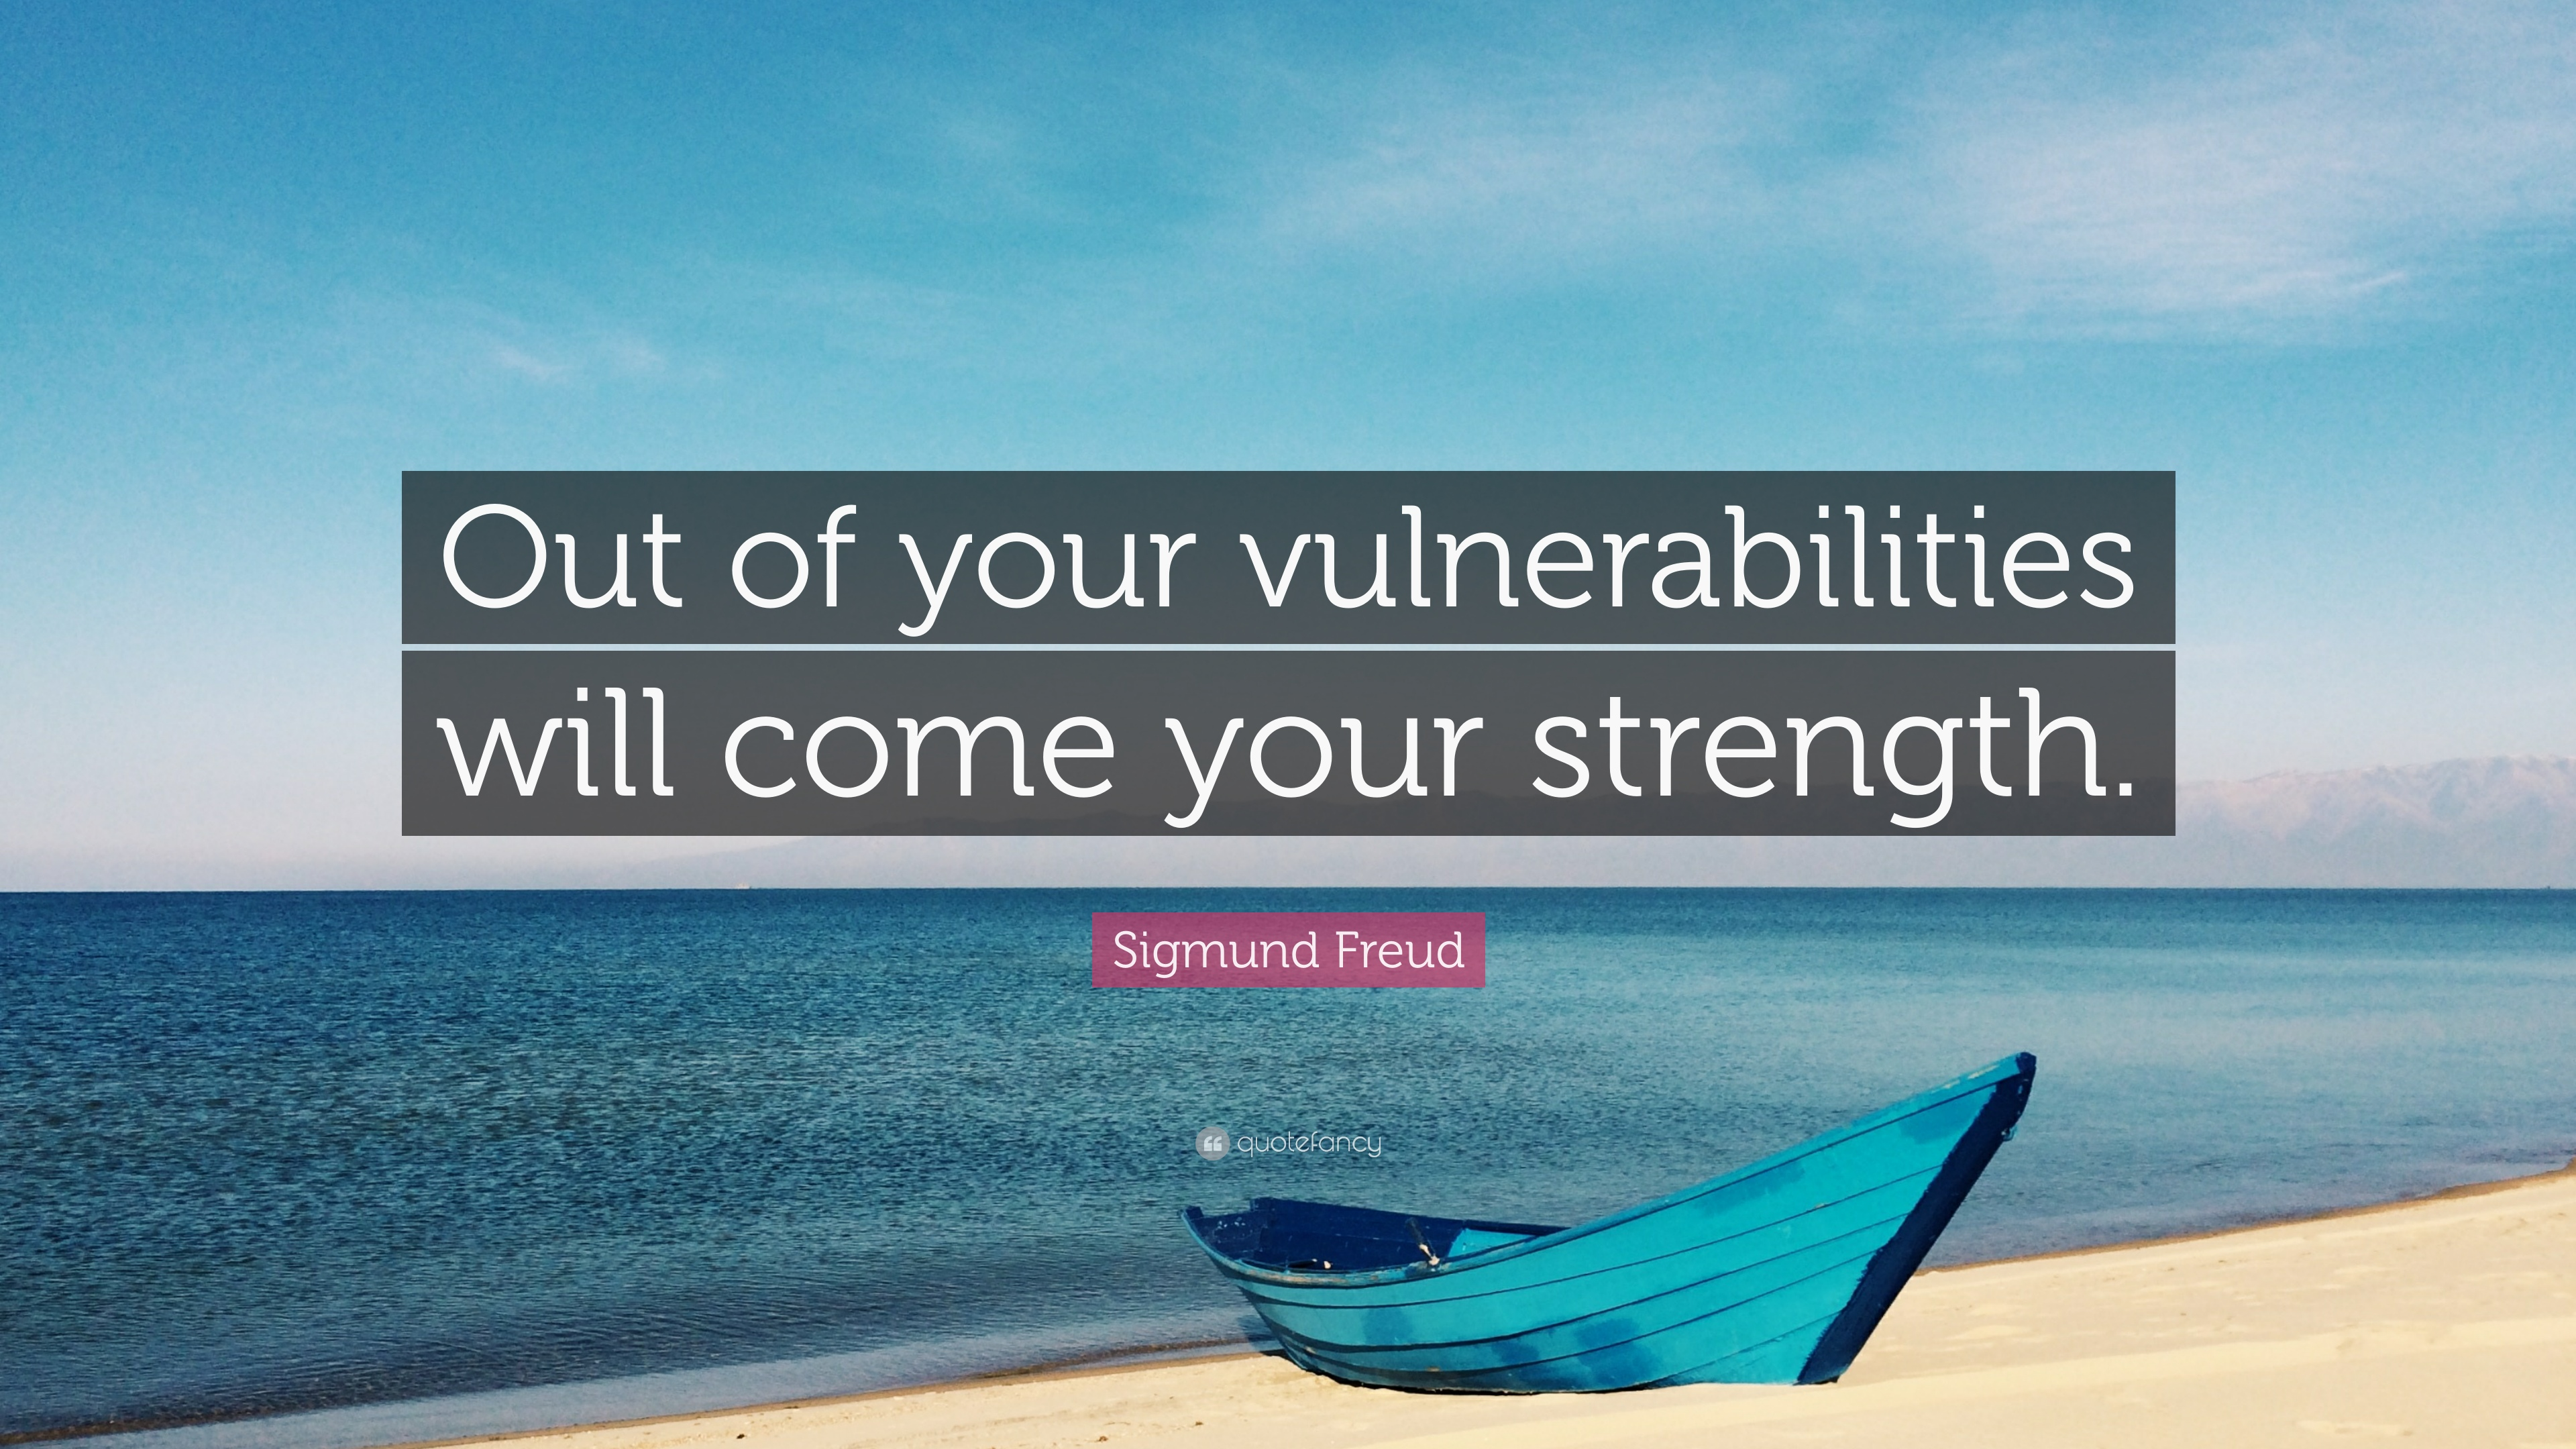 sigmund freud quote out of your vulnerabilities will come your sigmund freud quote out of your vulnerabilities will come your strength